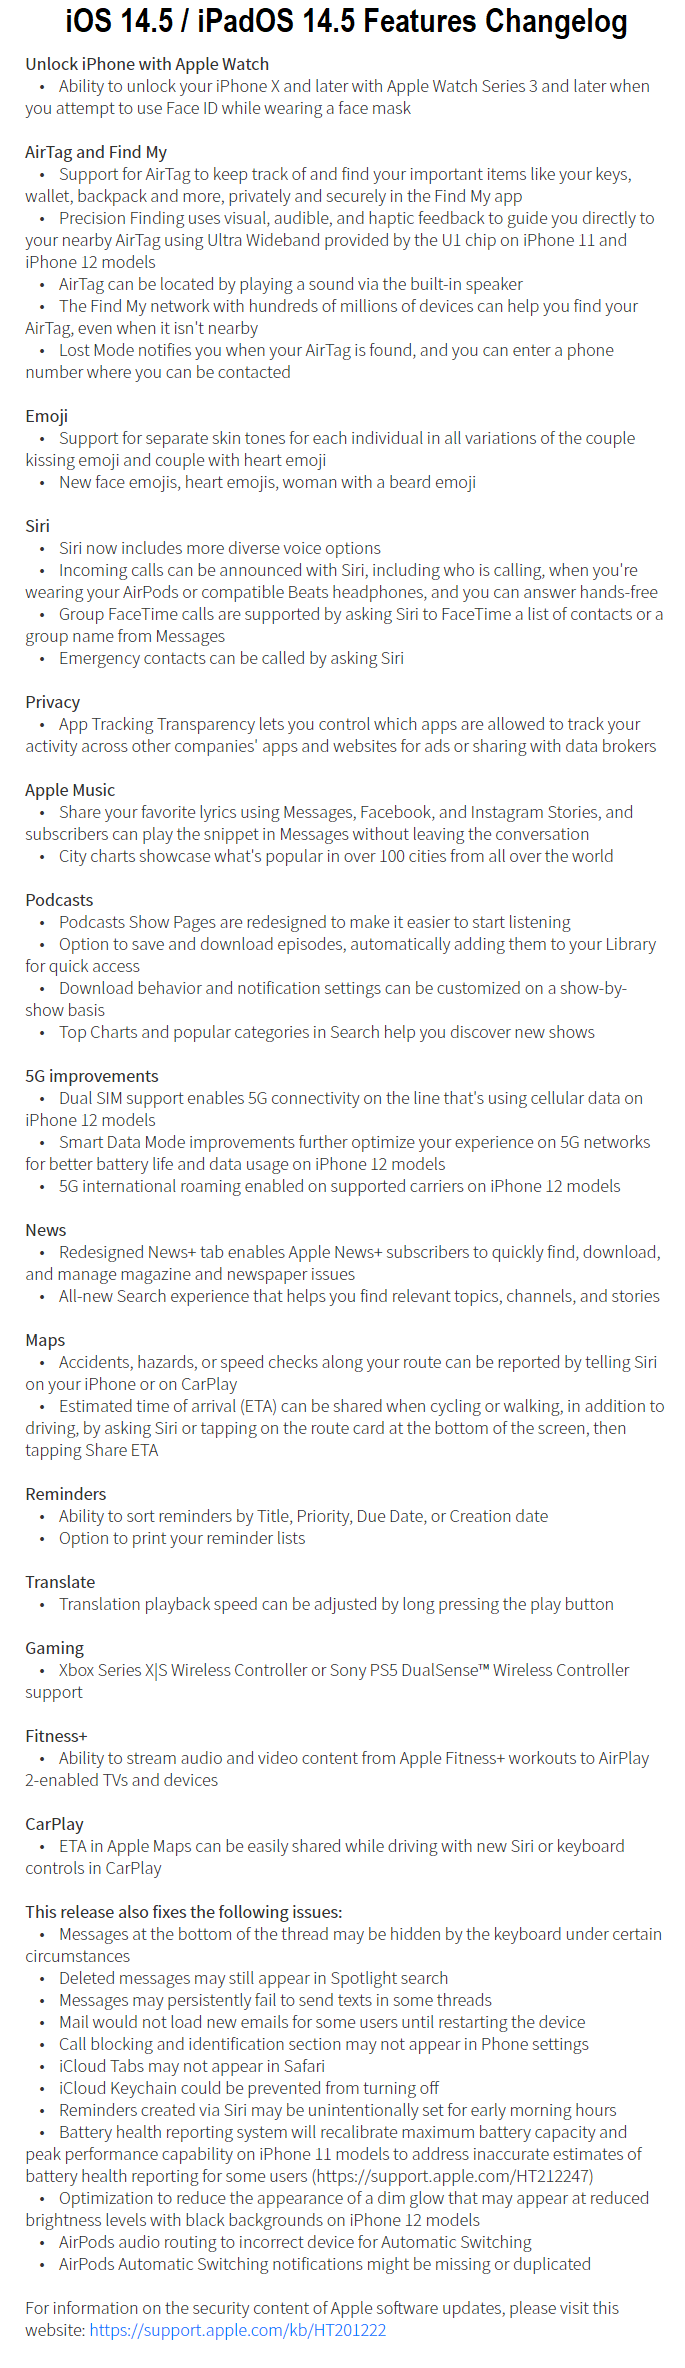 iOS 14.5 Features Changelog